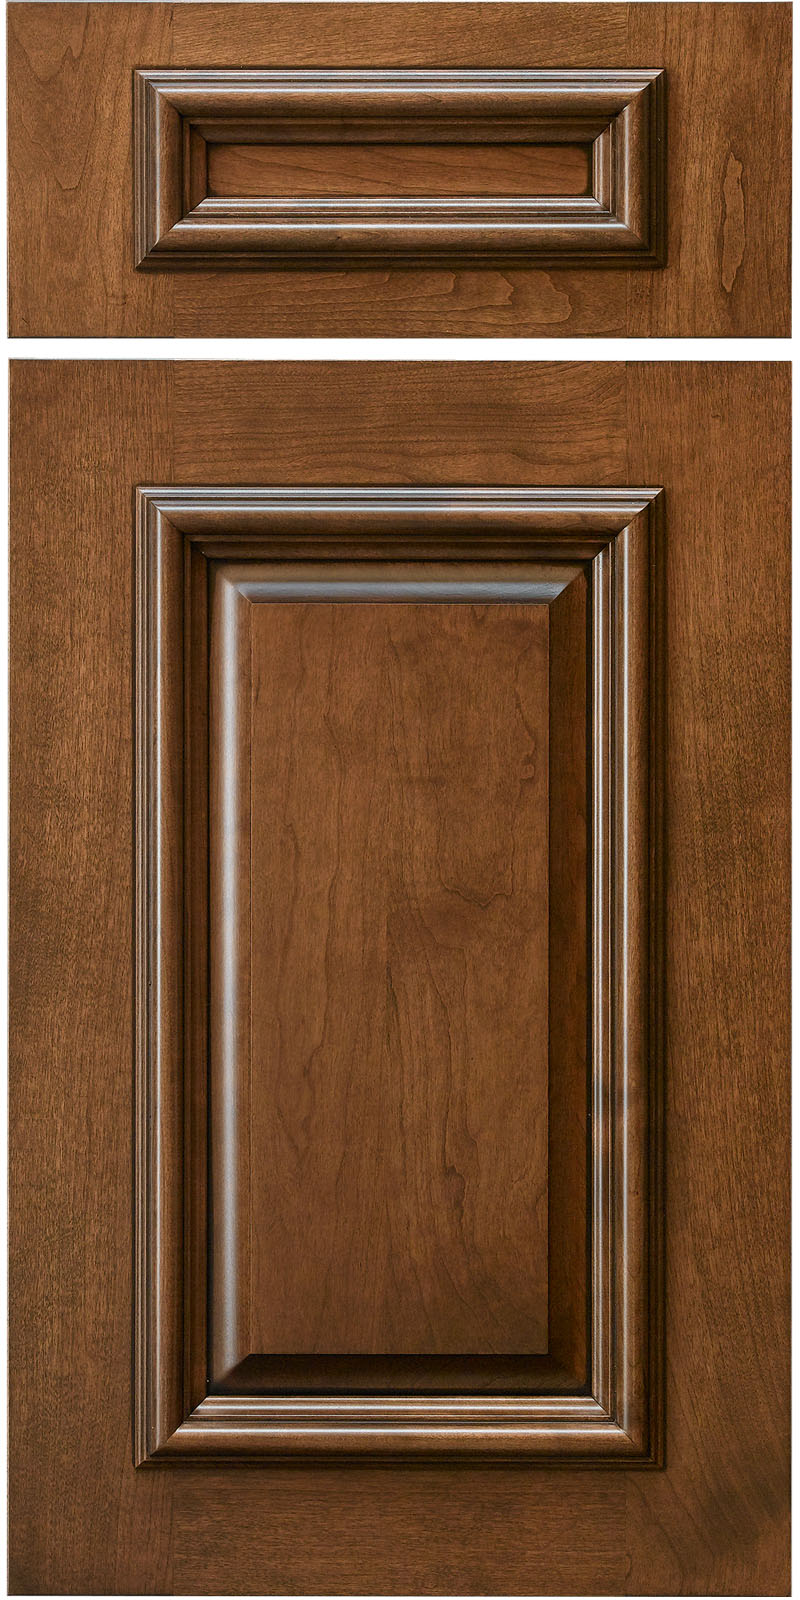 Barcelona Applied Moulding Door